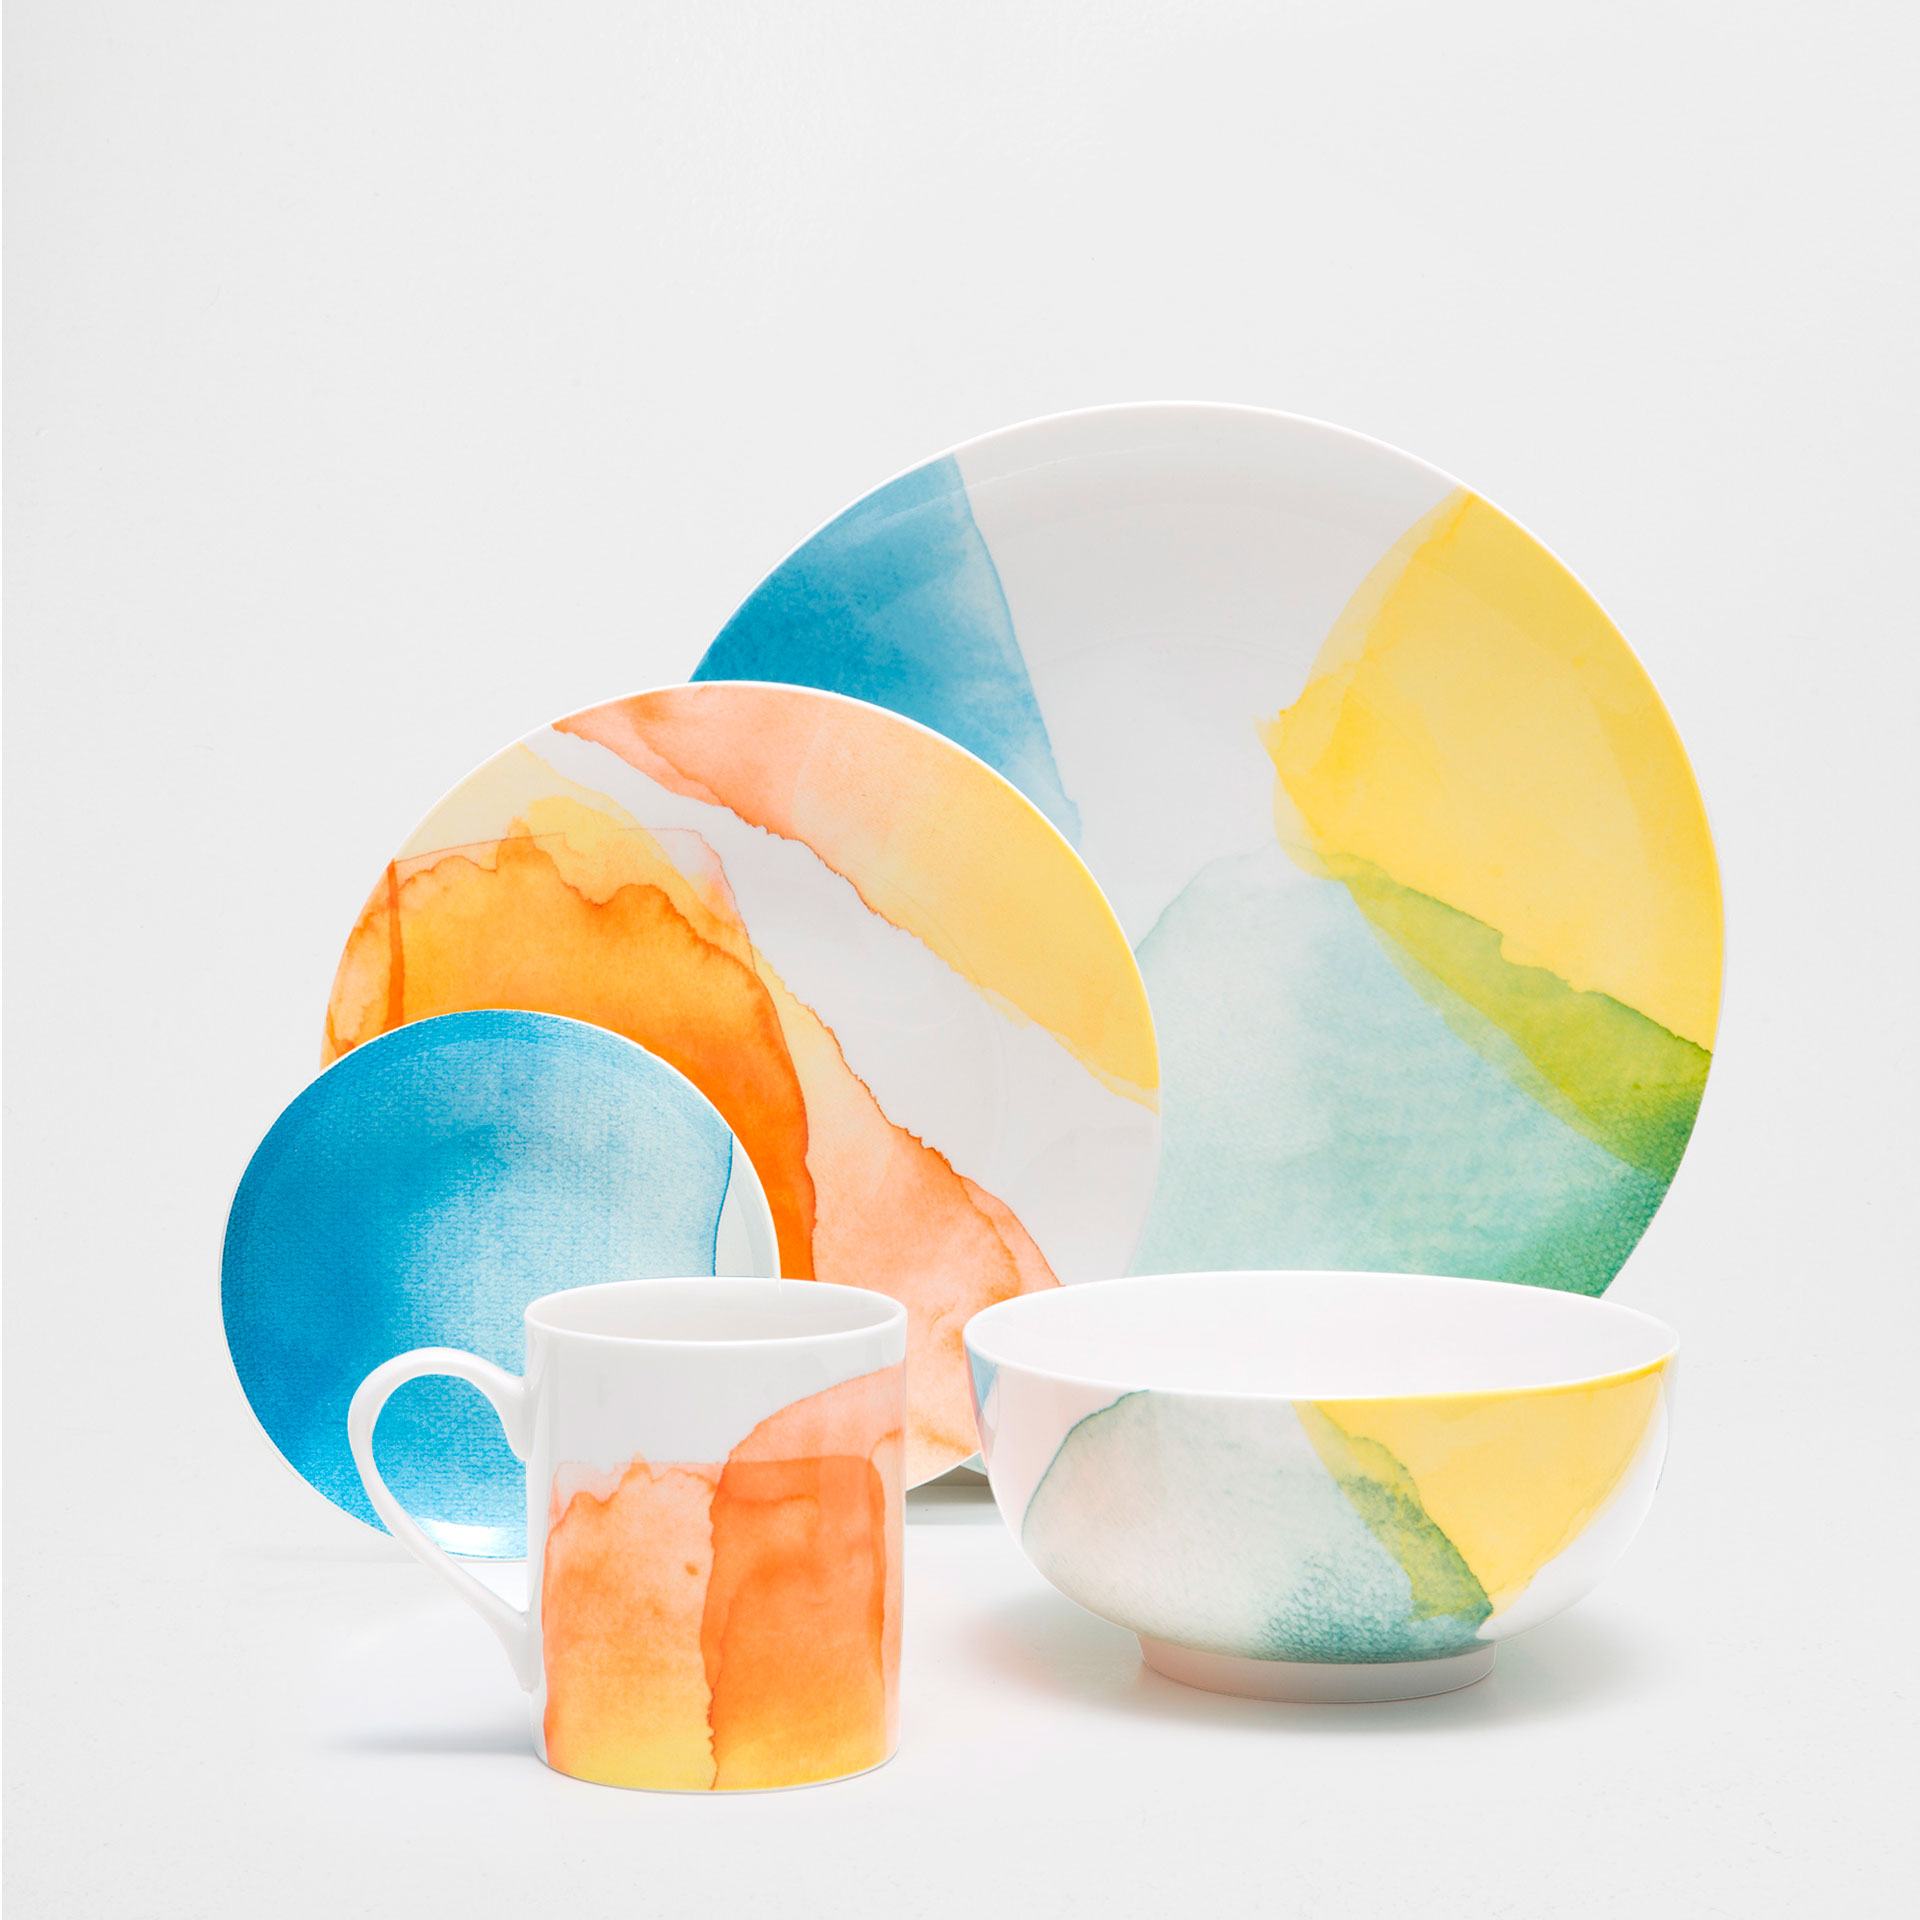 Watercolor porcelain dinnerware from Zara Home